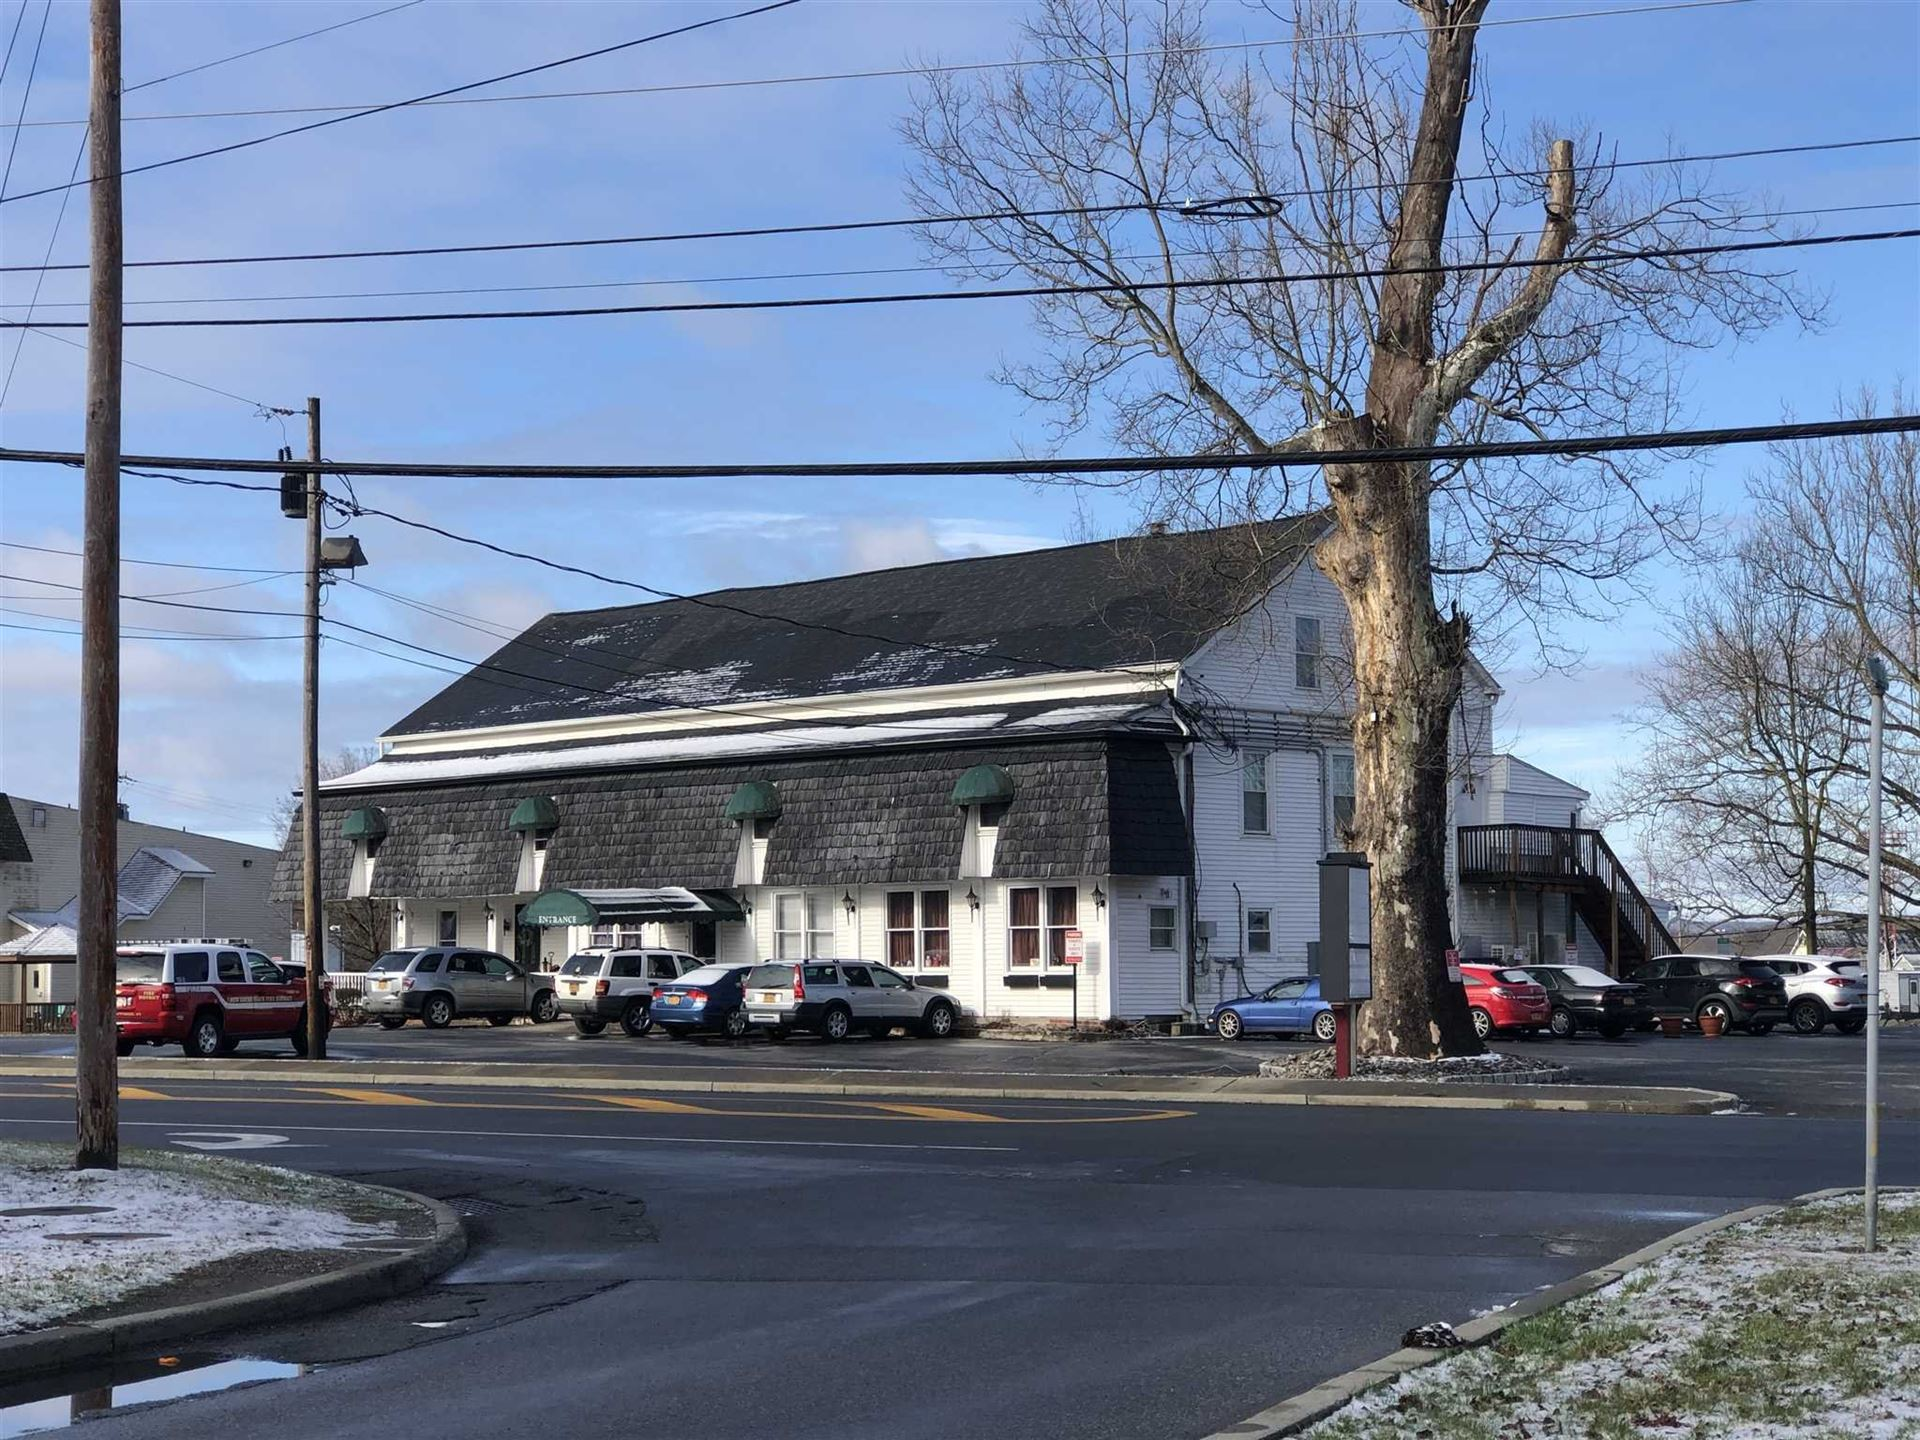 1639 ROUTE 376, Wappingers Falls, NY 12590 - #: 392418